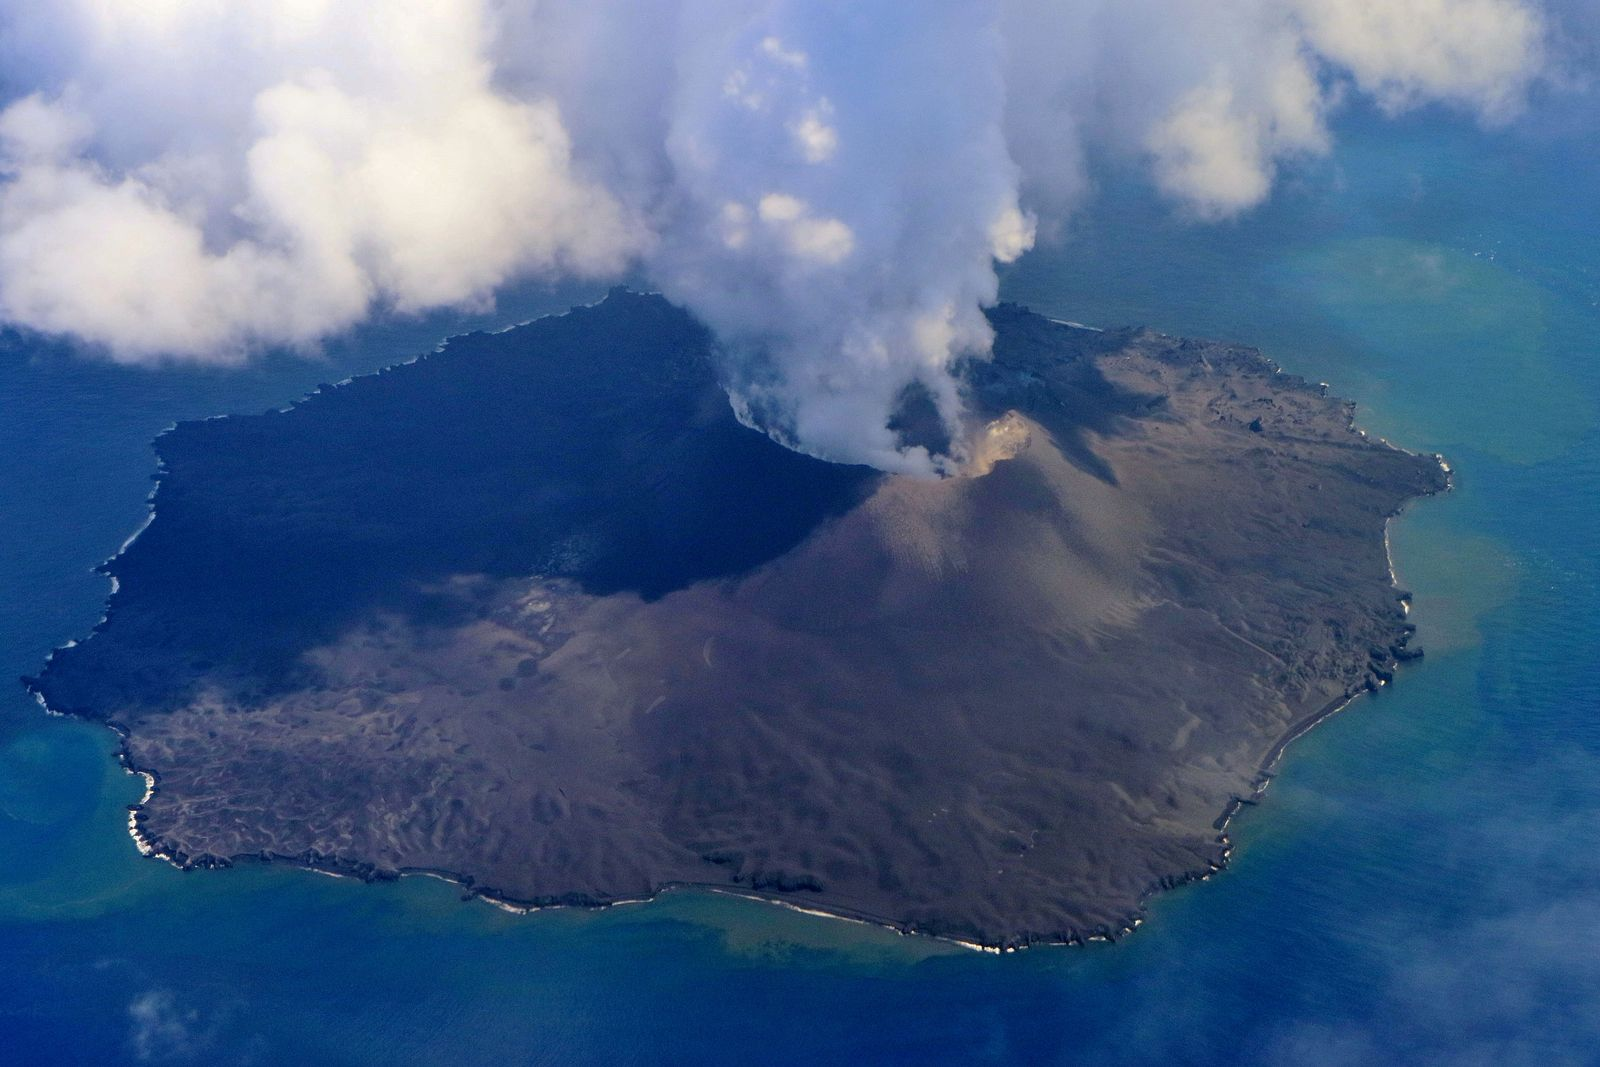 Nishinoshima - last view of the island and the crater on 08/23/2020 / 12:58 p.m. - photo Japan Coast Guards